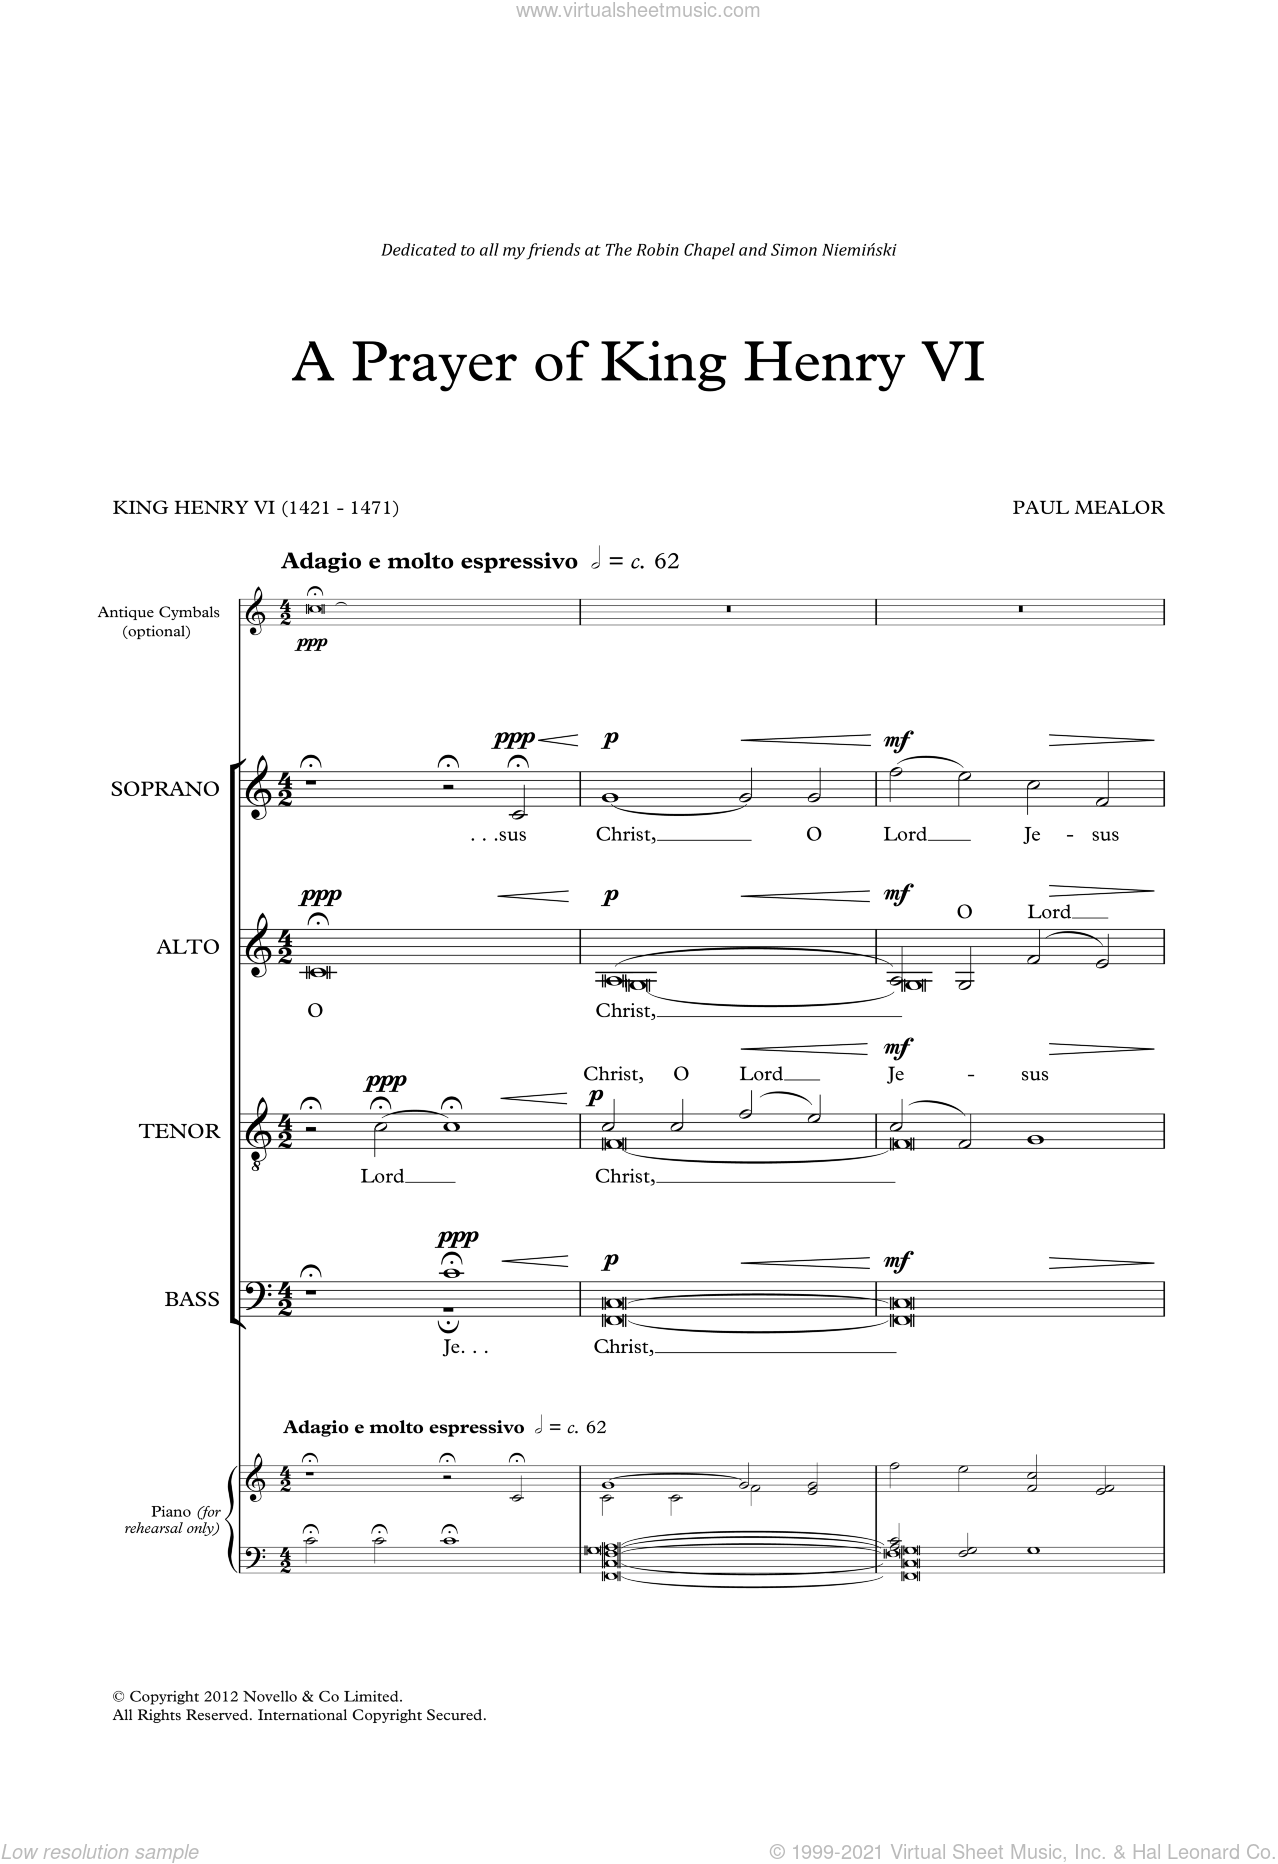 A Prayer Of King Henry VI sheet music for voice, piano or guitar by Paul Mealor and King Henry VI, classical score, intermediate skill level